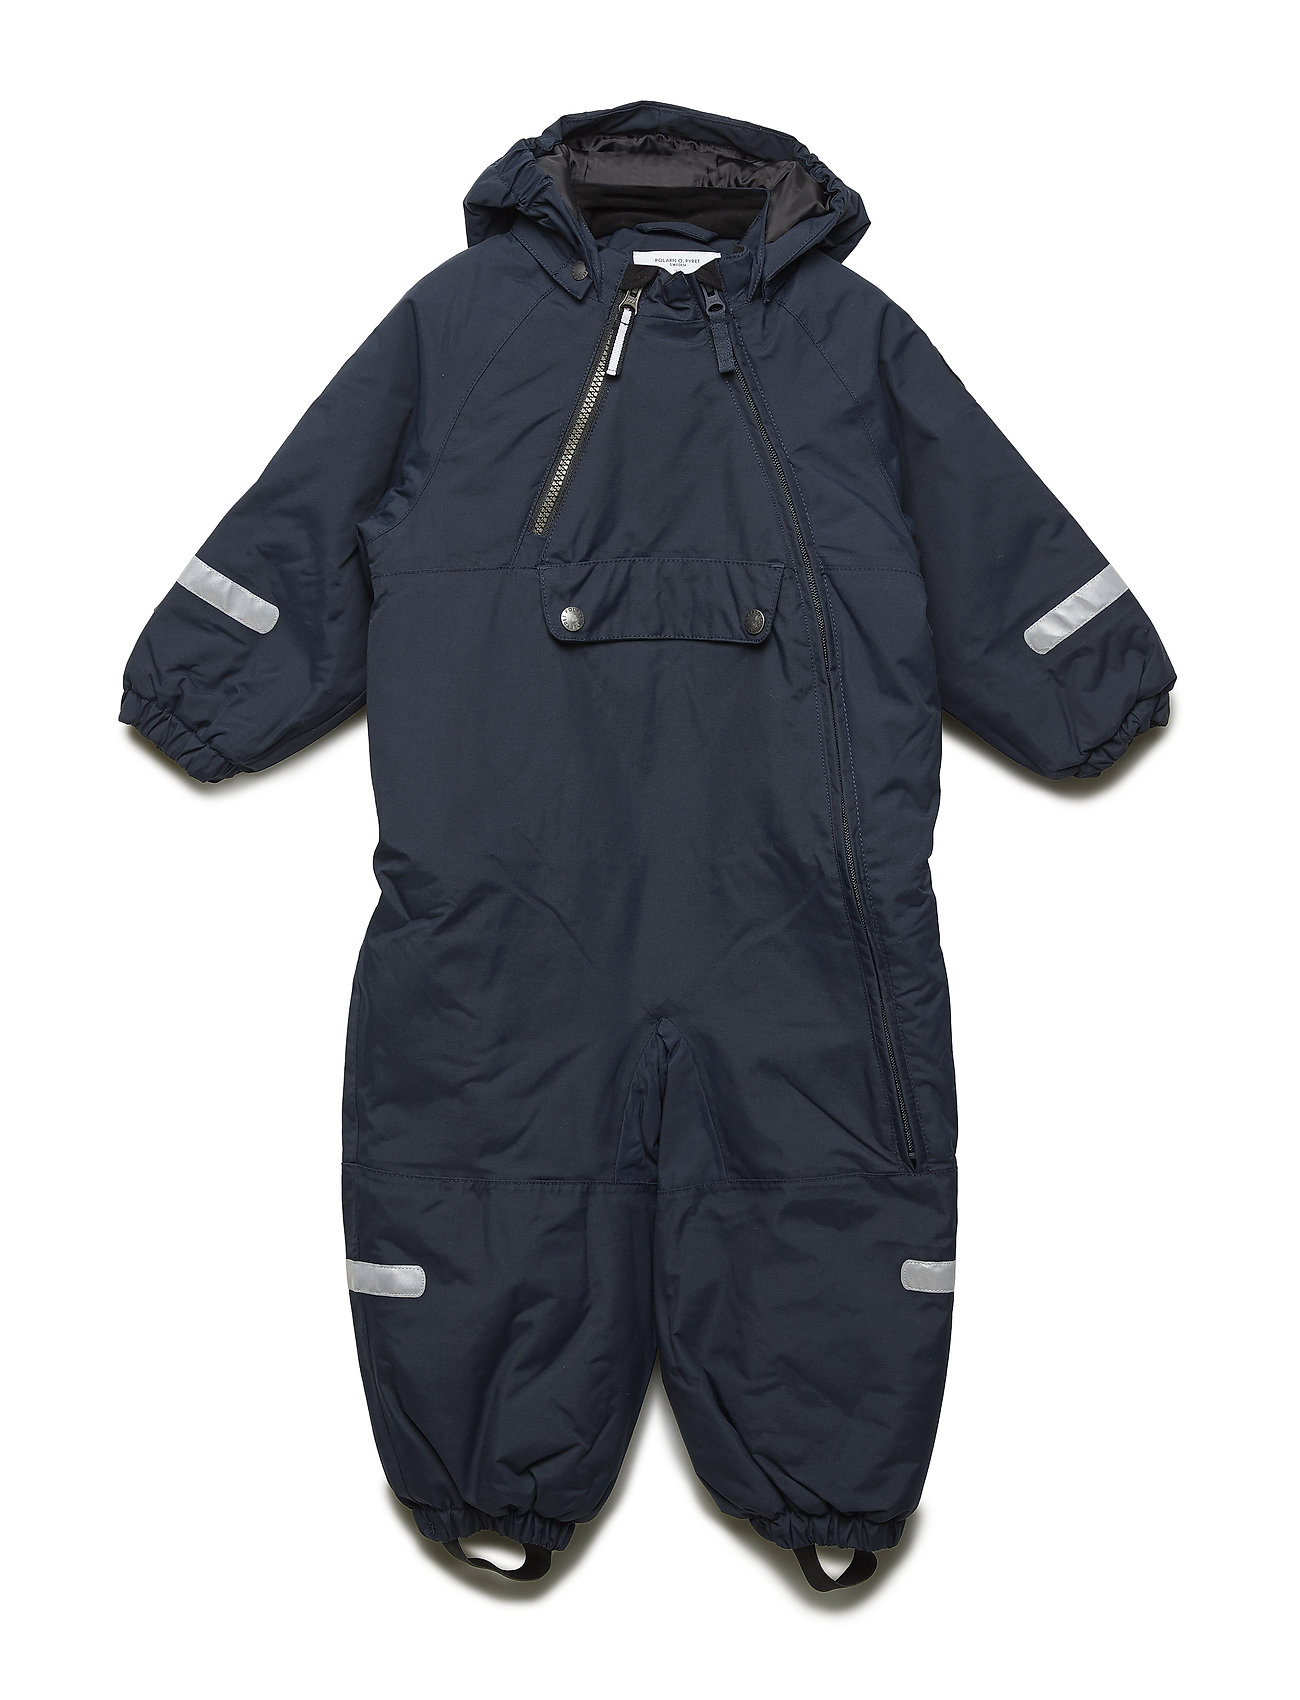 Polarn O. Pyret Overall Solid Baby